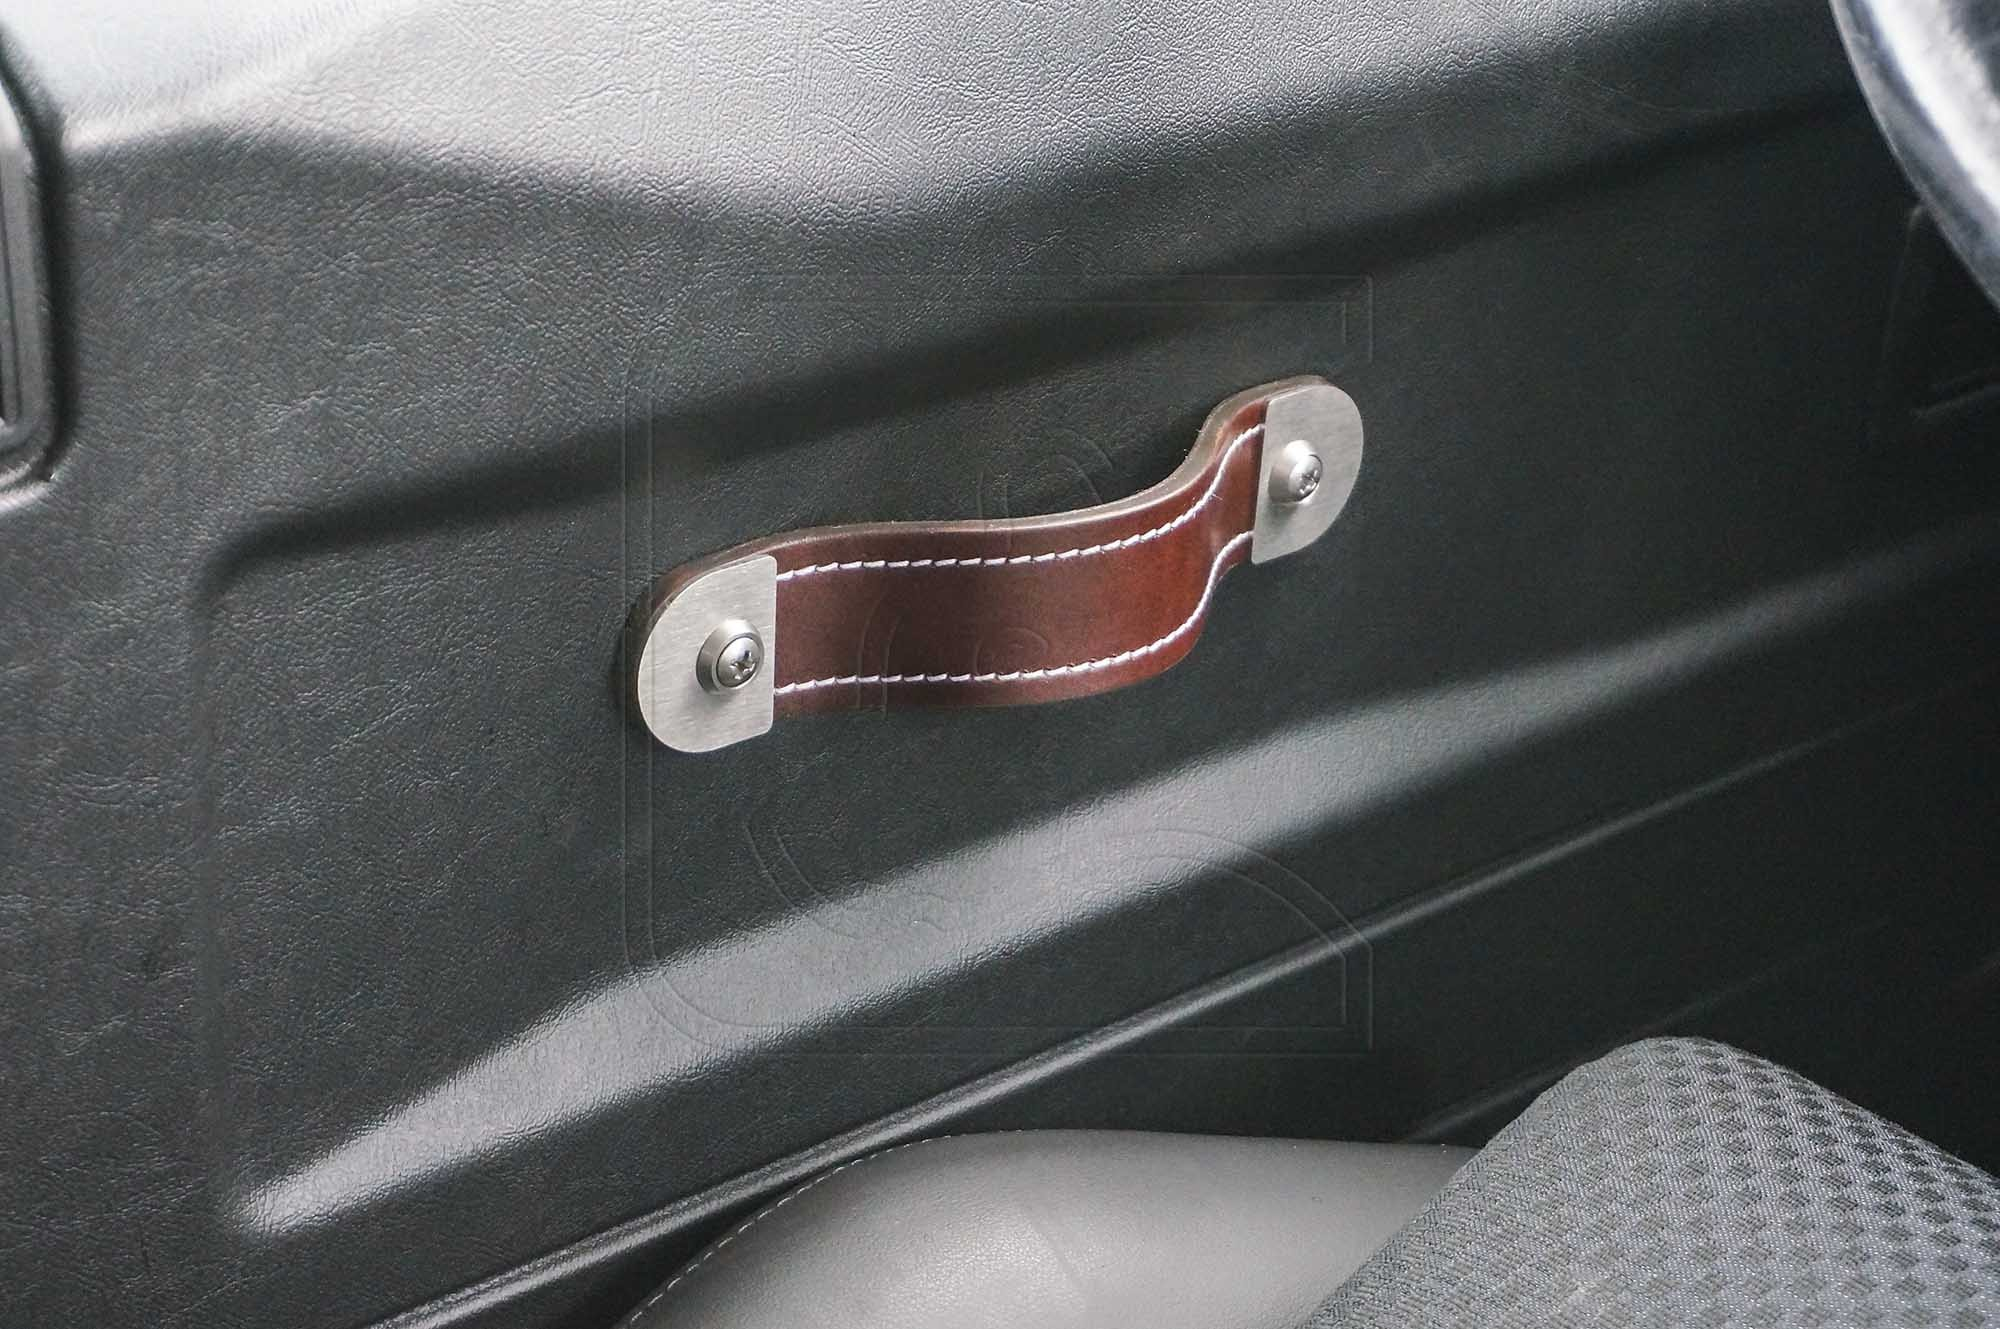 PREMIUM Interior Leather Door Pull/Grab Handles (set of 2) for Land Rover Defender